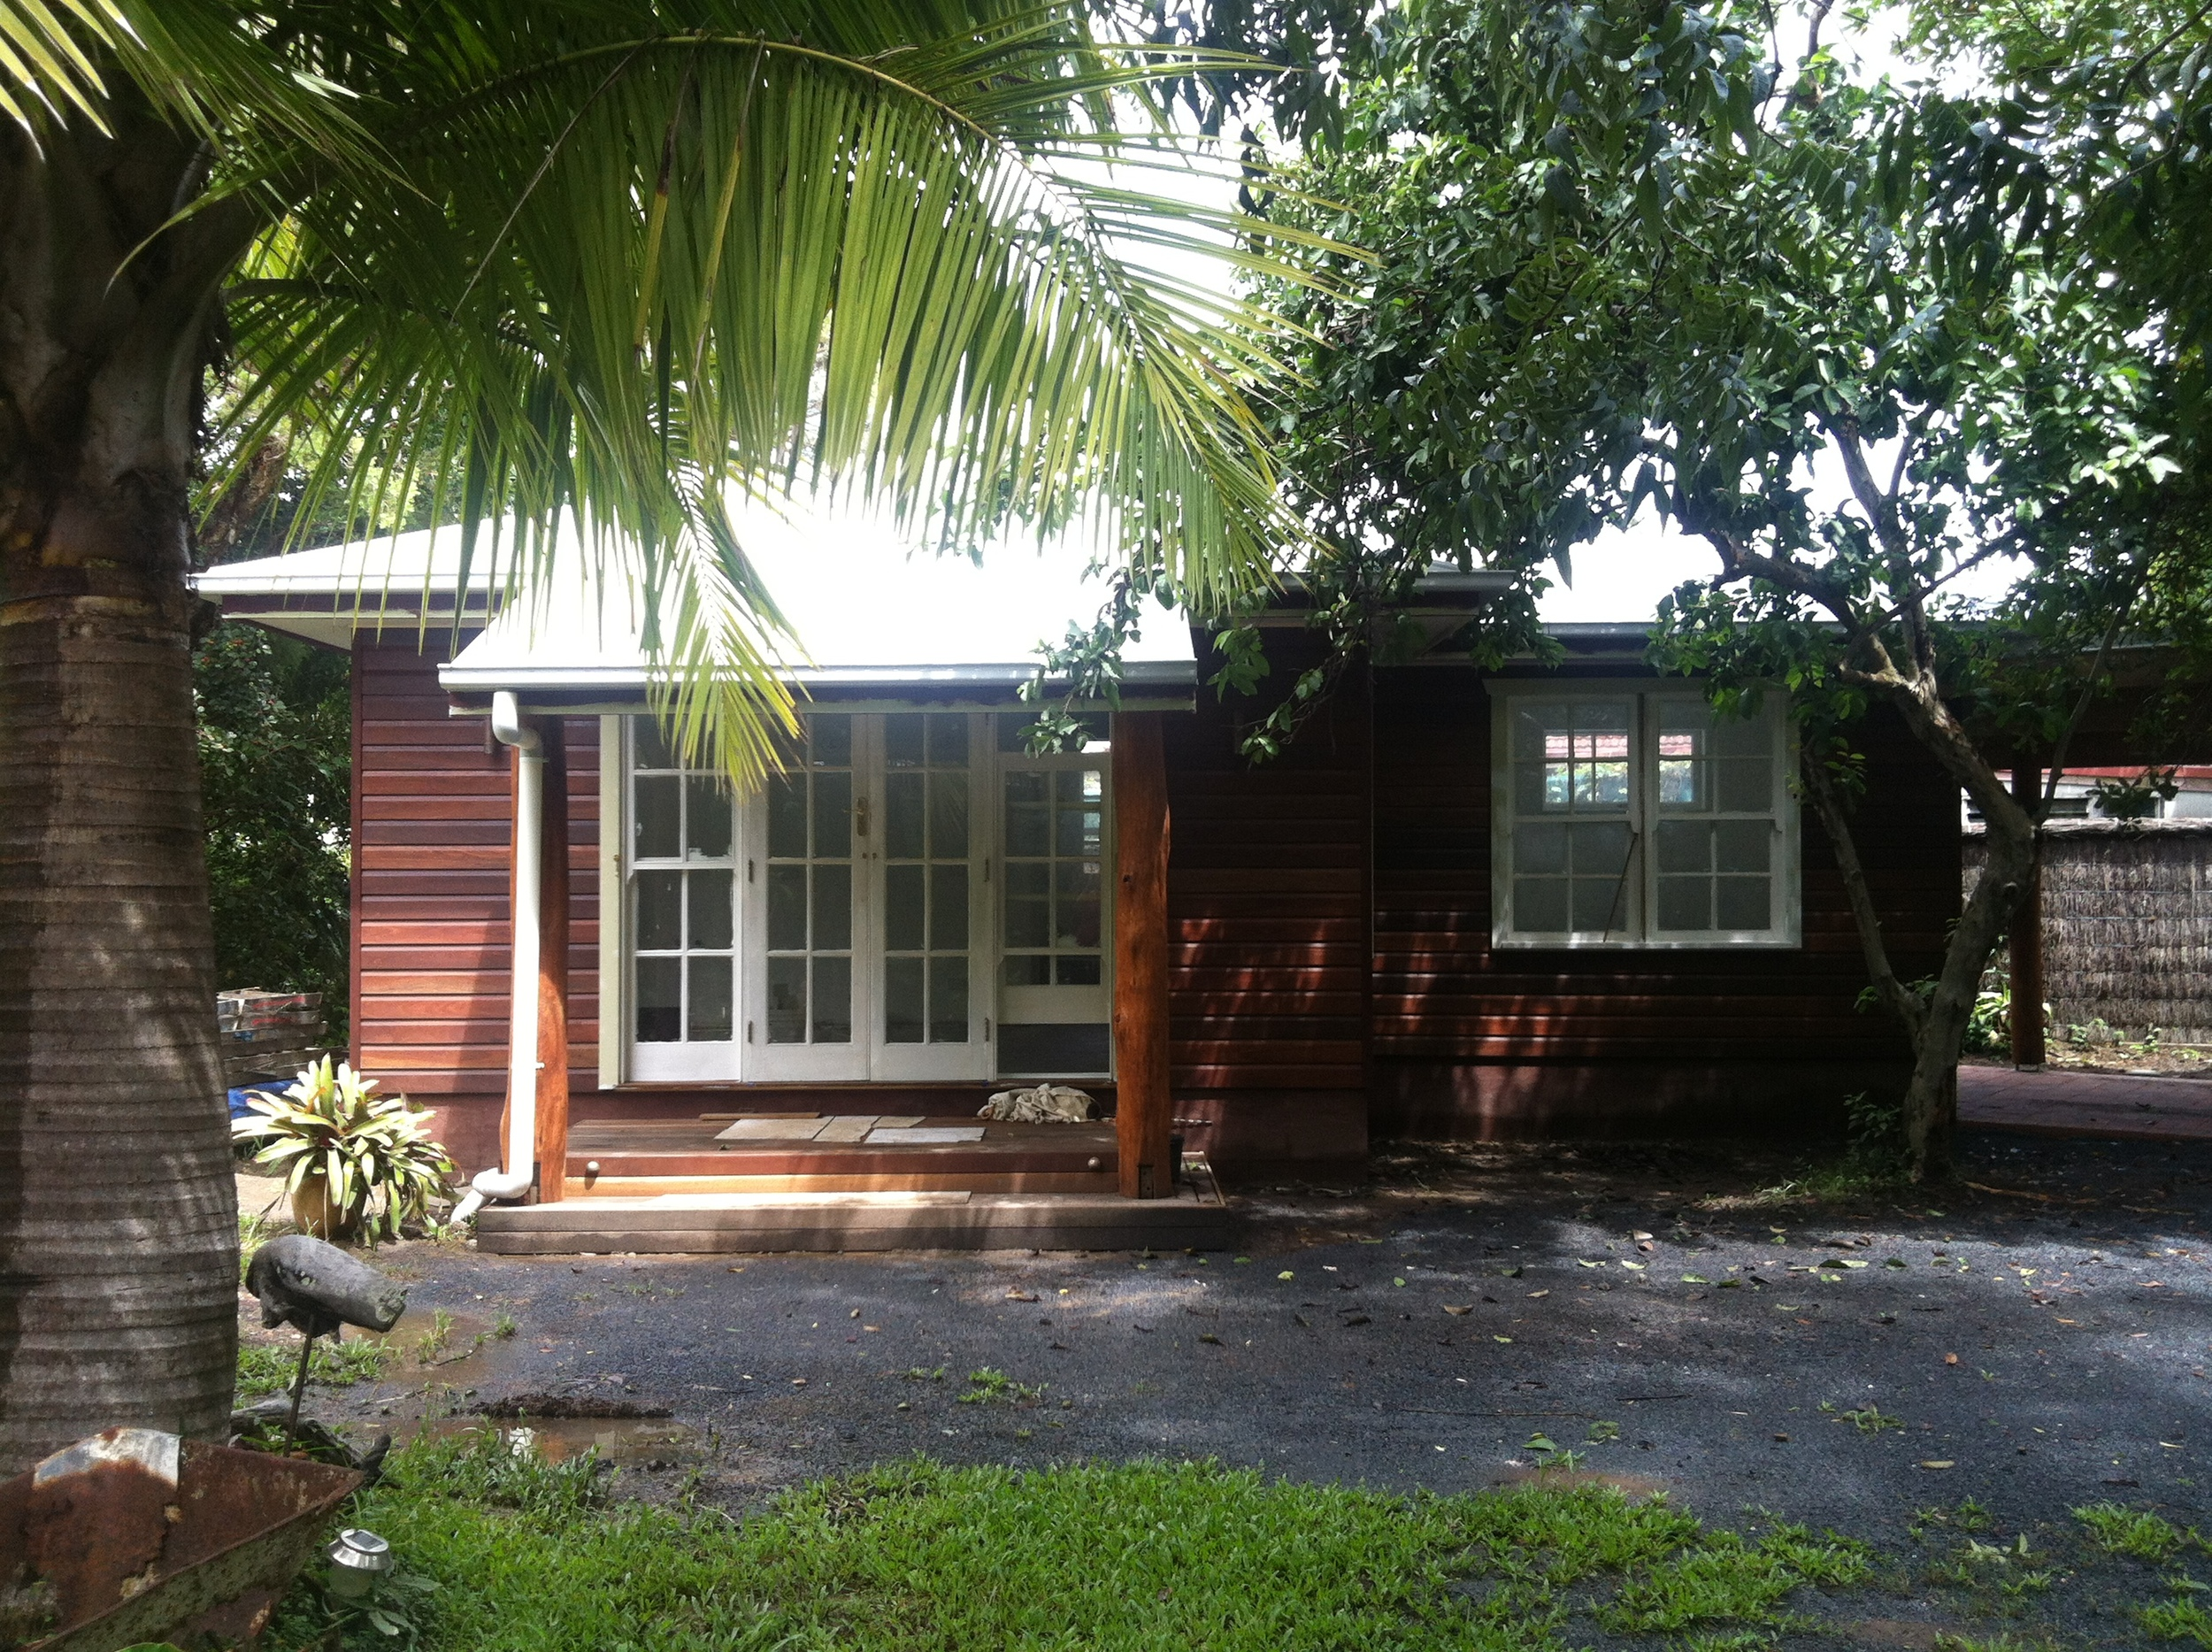 Secondary dwelling as guest accommodation, Mullumbimby NSW